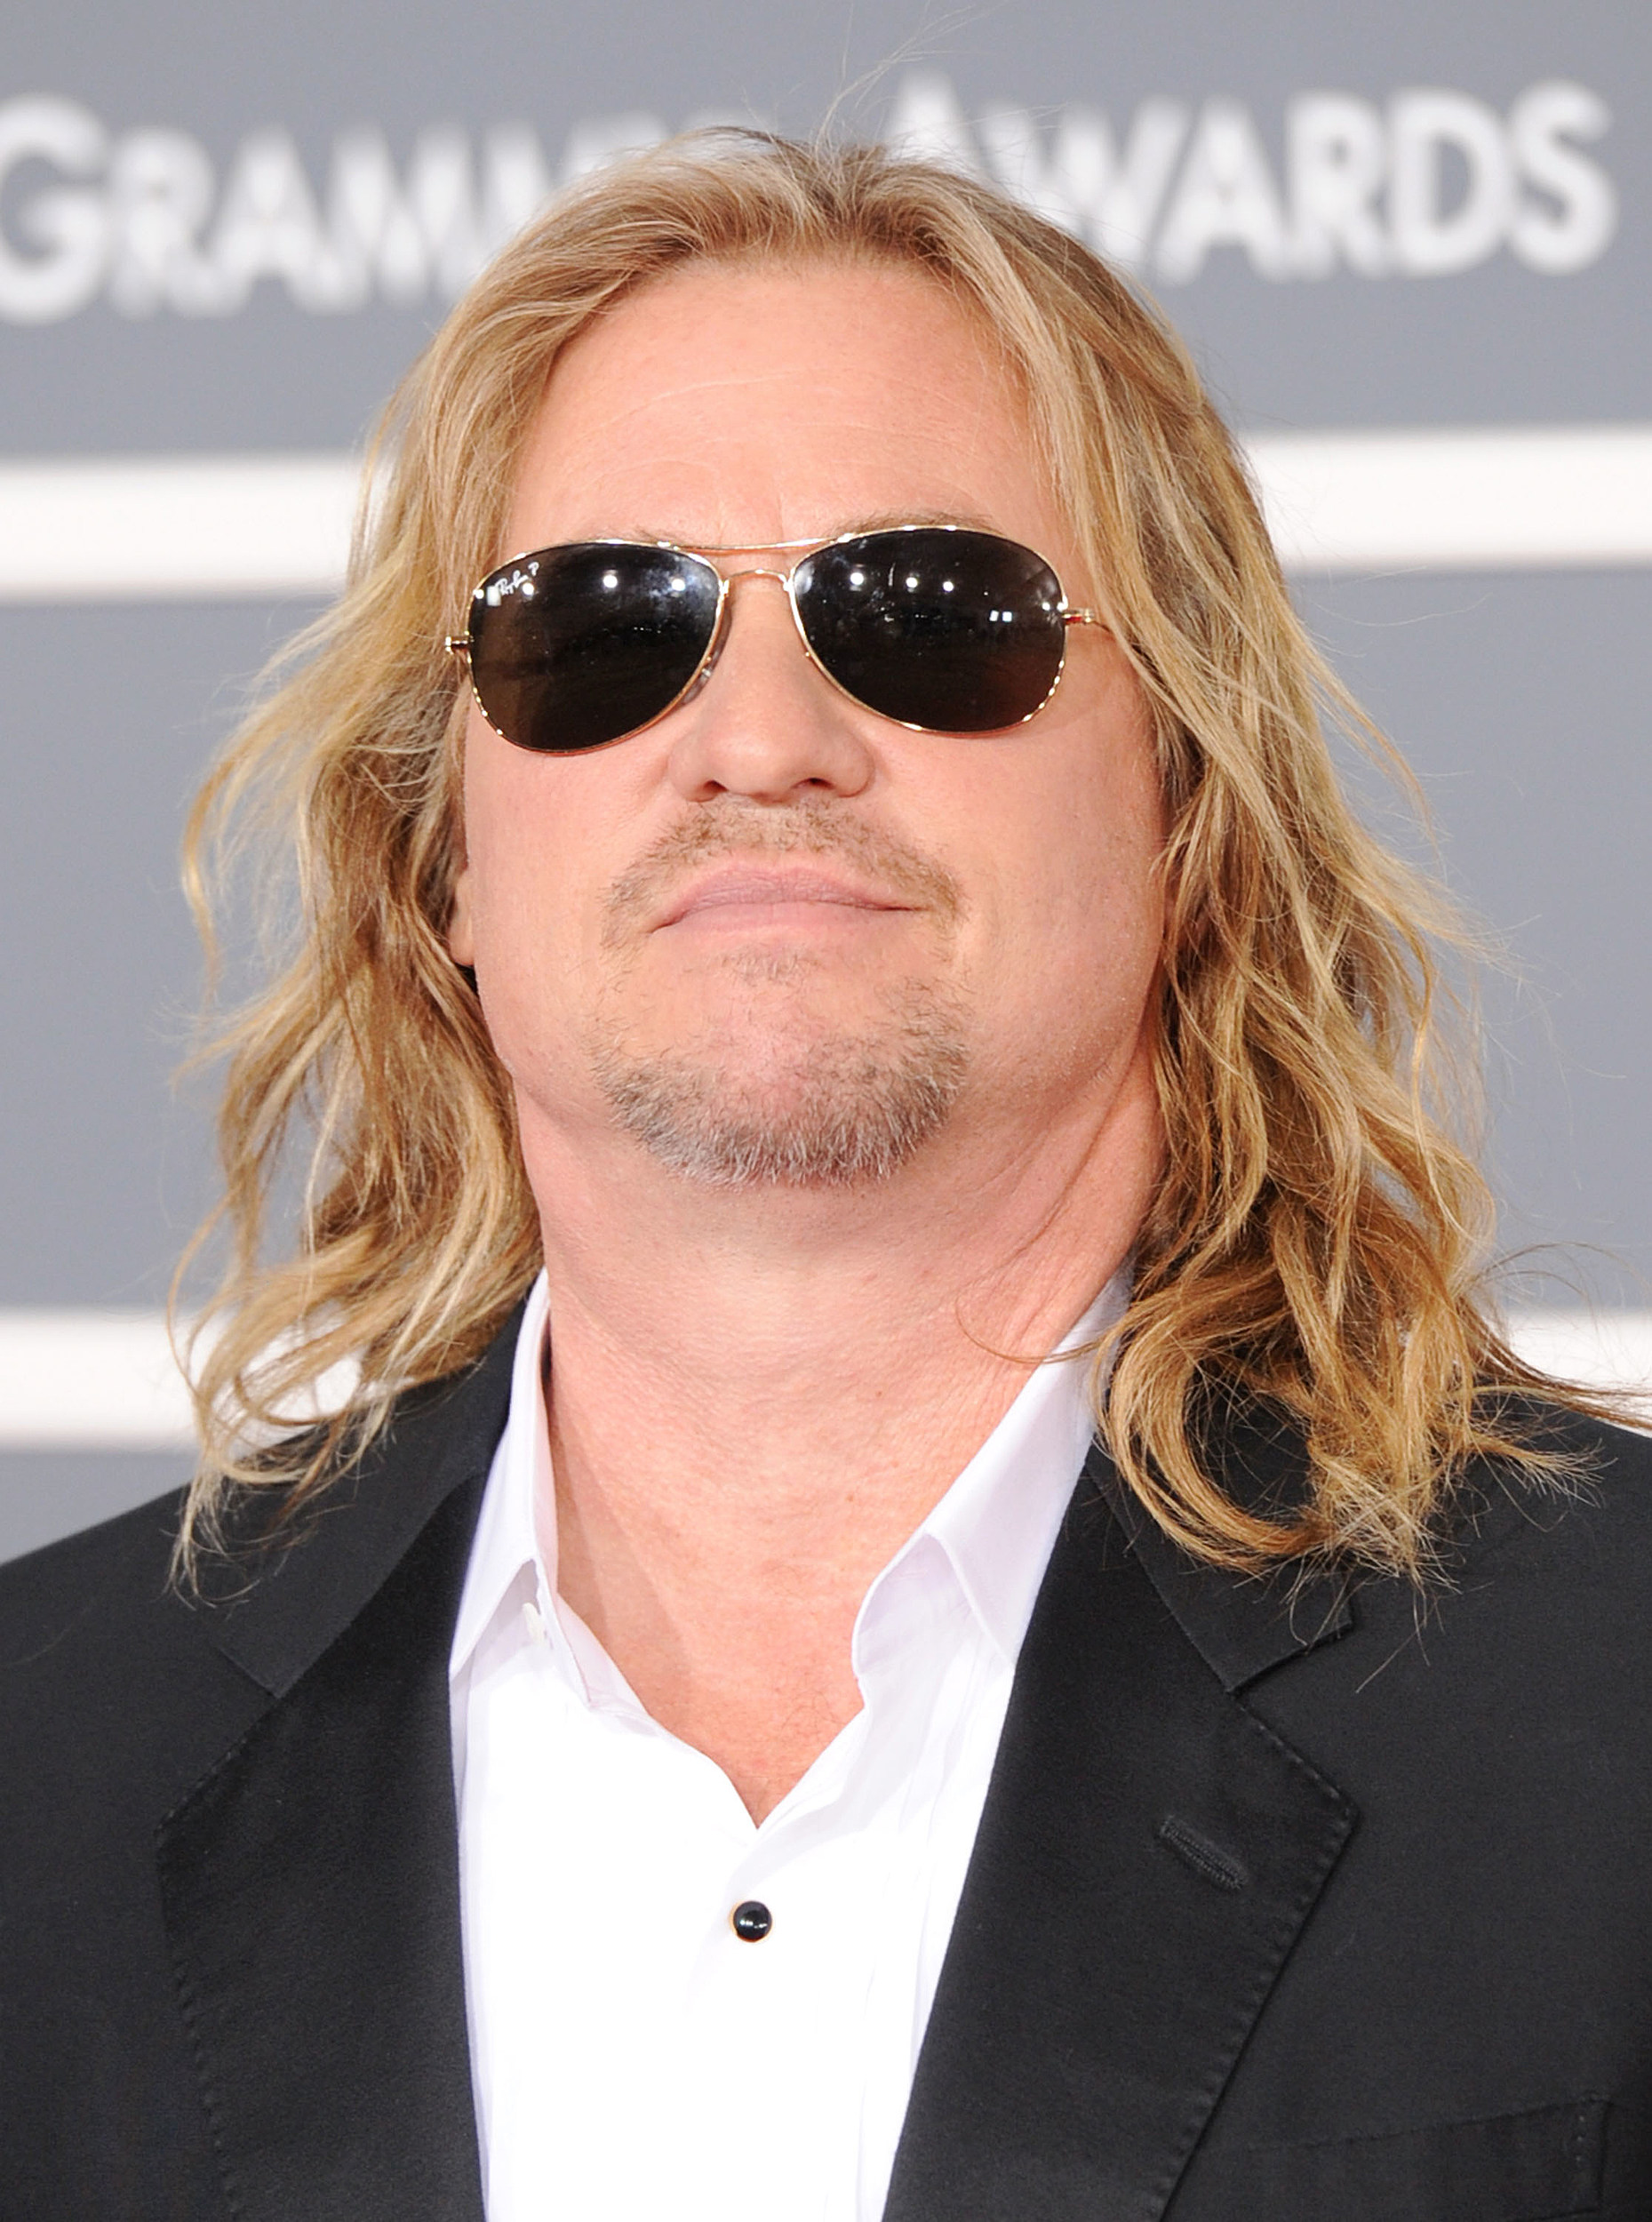 Val Kilmer Picture 17 - Val Kilmer Is Honored During The